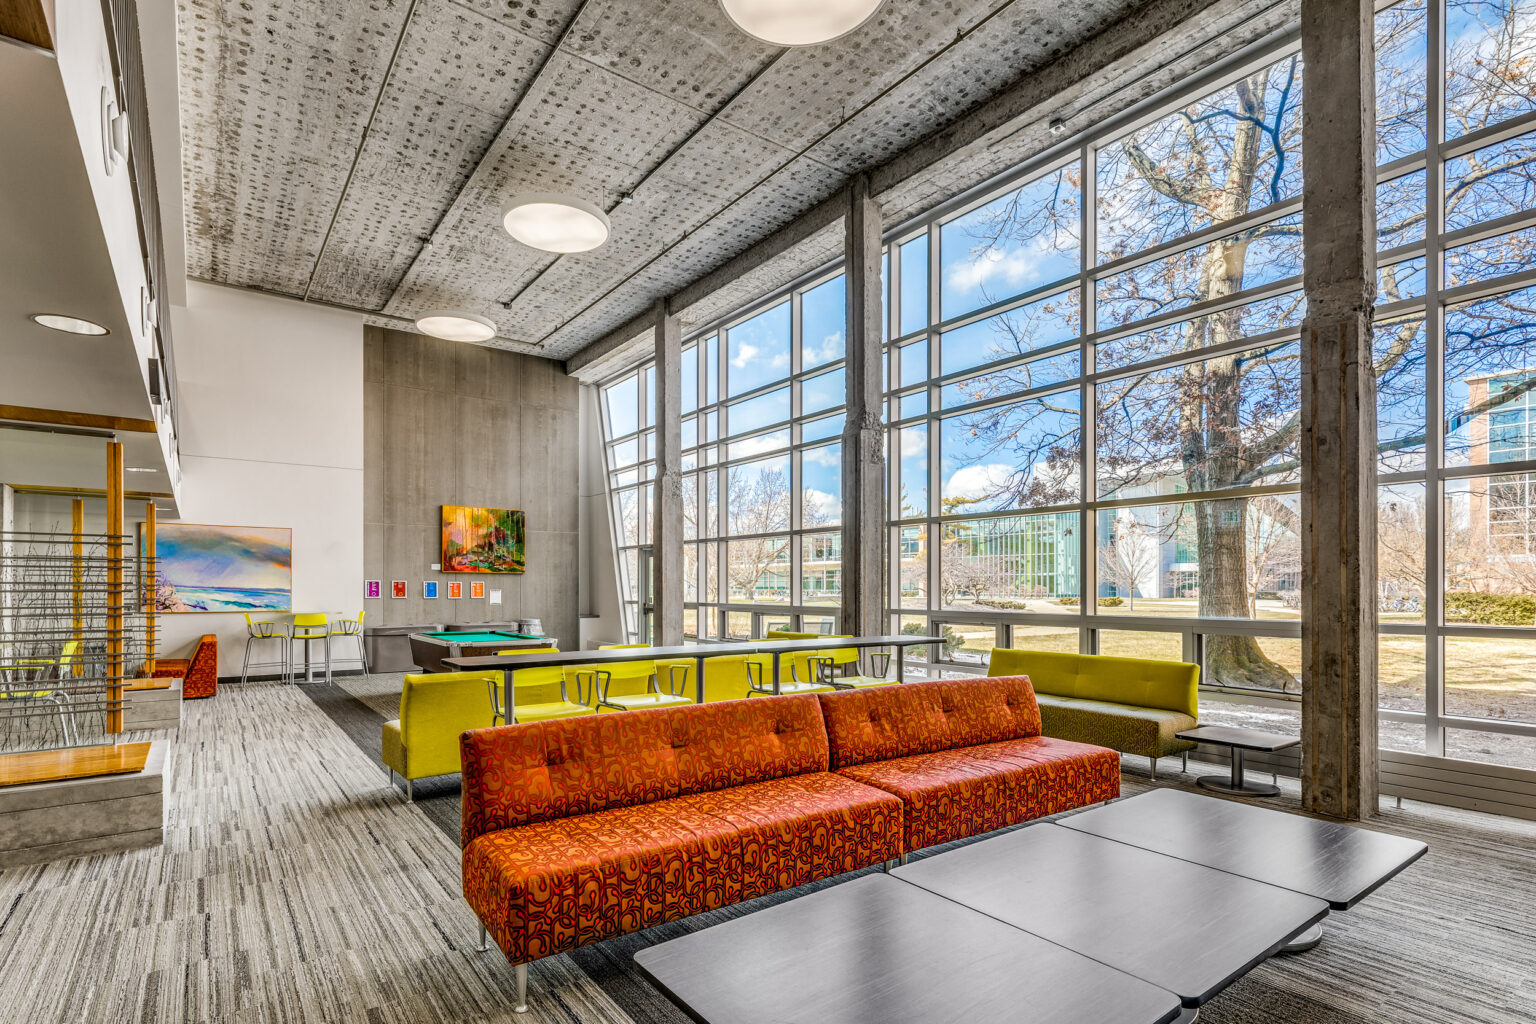 Architectural Photography of the interior of a Student Lounge at MSU in East Lansing, MI